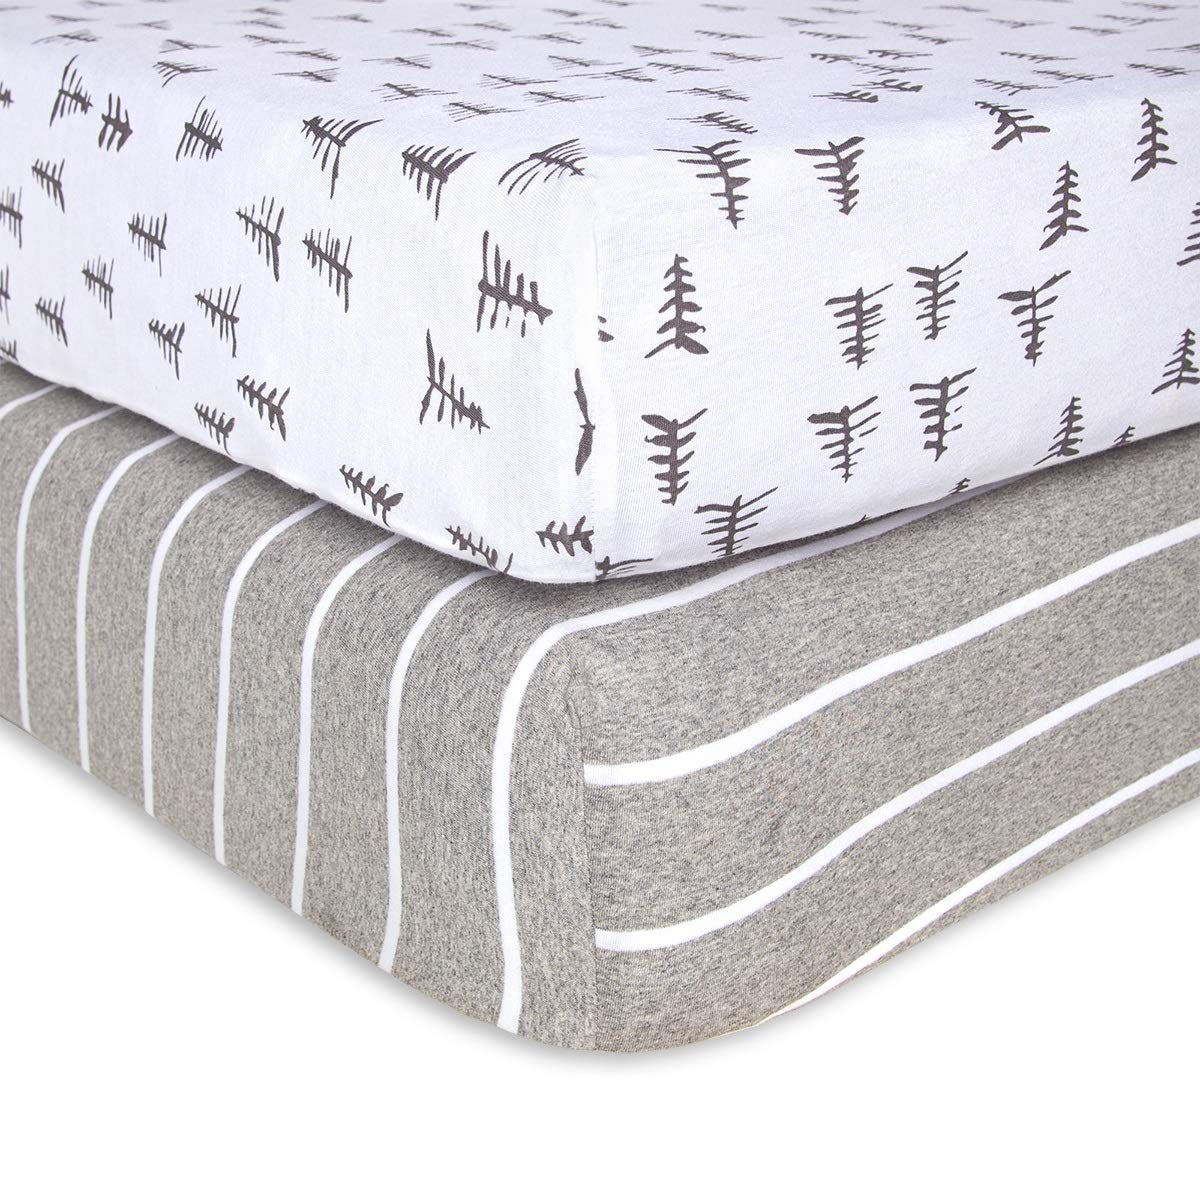 Burt's Bees Baby - Fitted Crib Sheets, 2-Pack, Boys & Unisex 100% Organic Cotton Crib Sheet for Standard Crib and Toddler Mattresses (Pine Forest) by Burt's Bees Baby